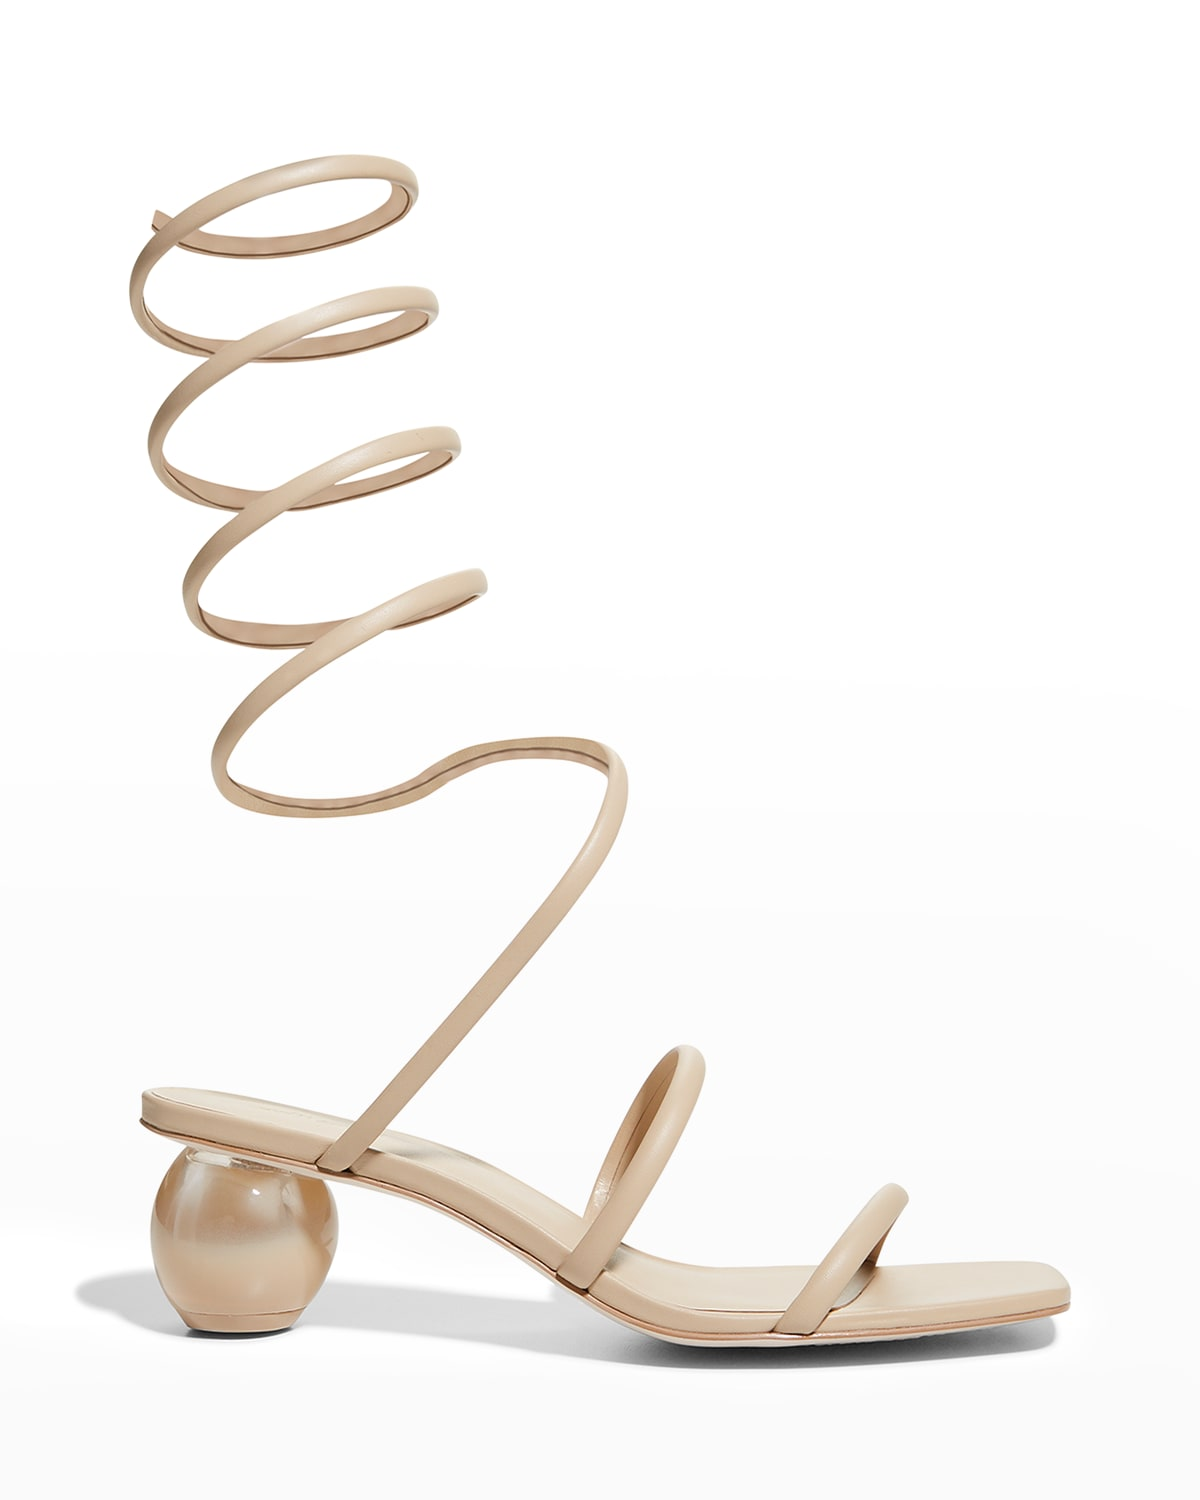 Freya Leather Ankle-Coil Sandals